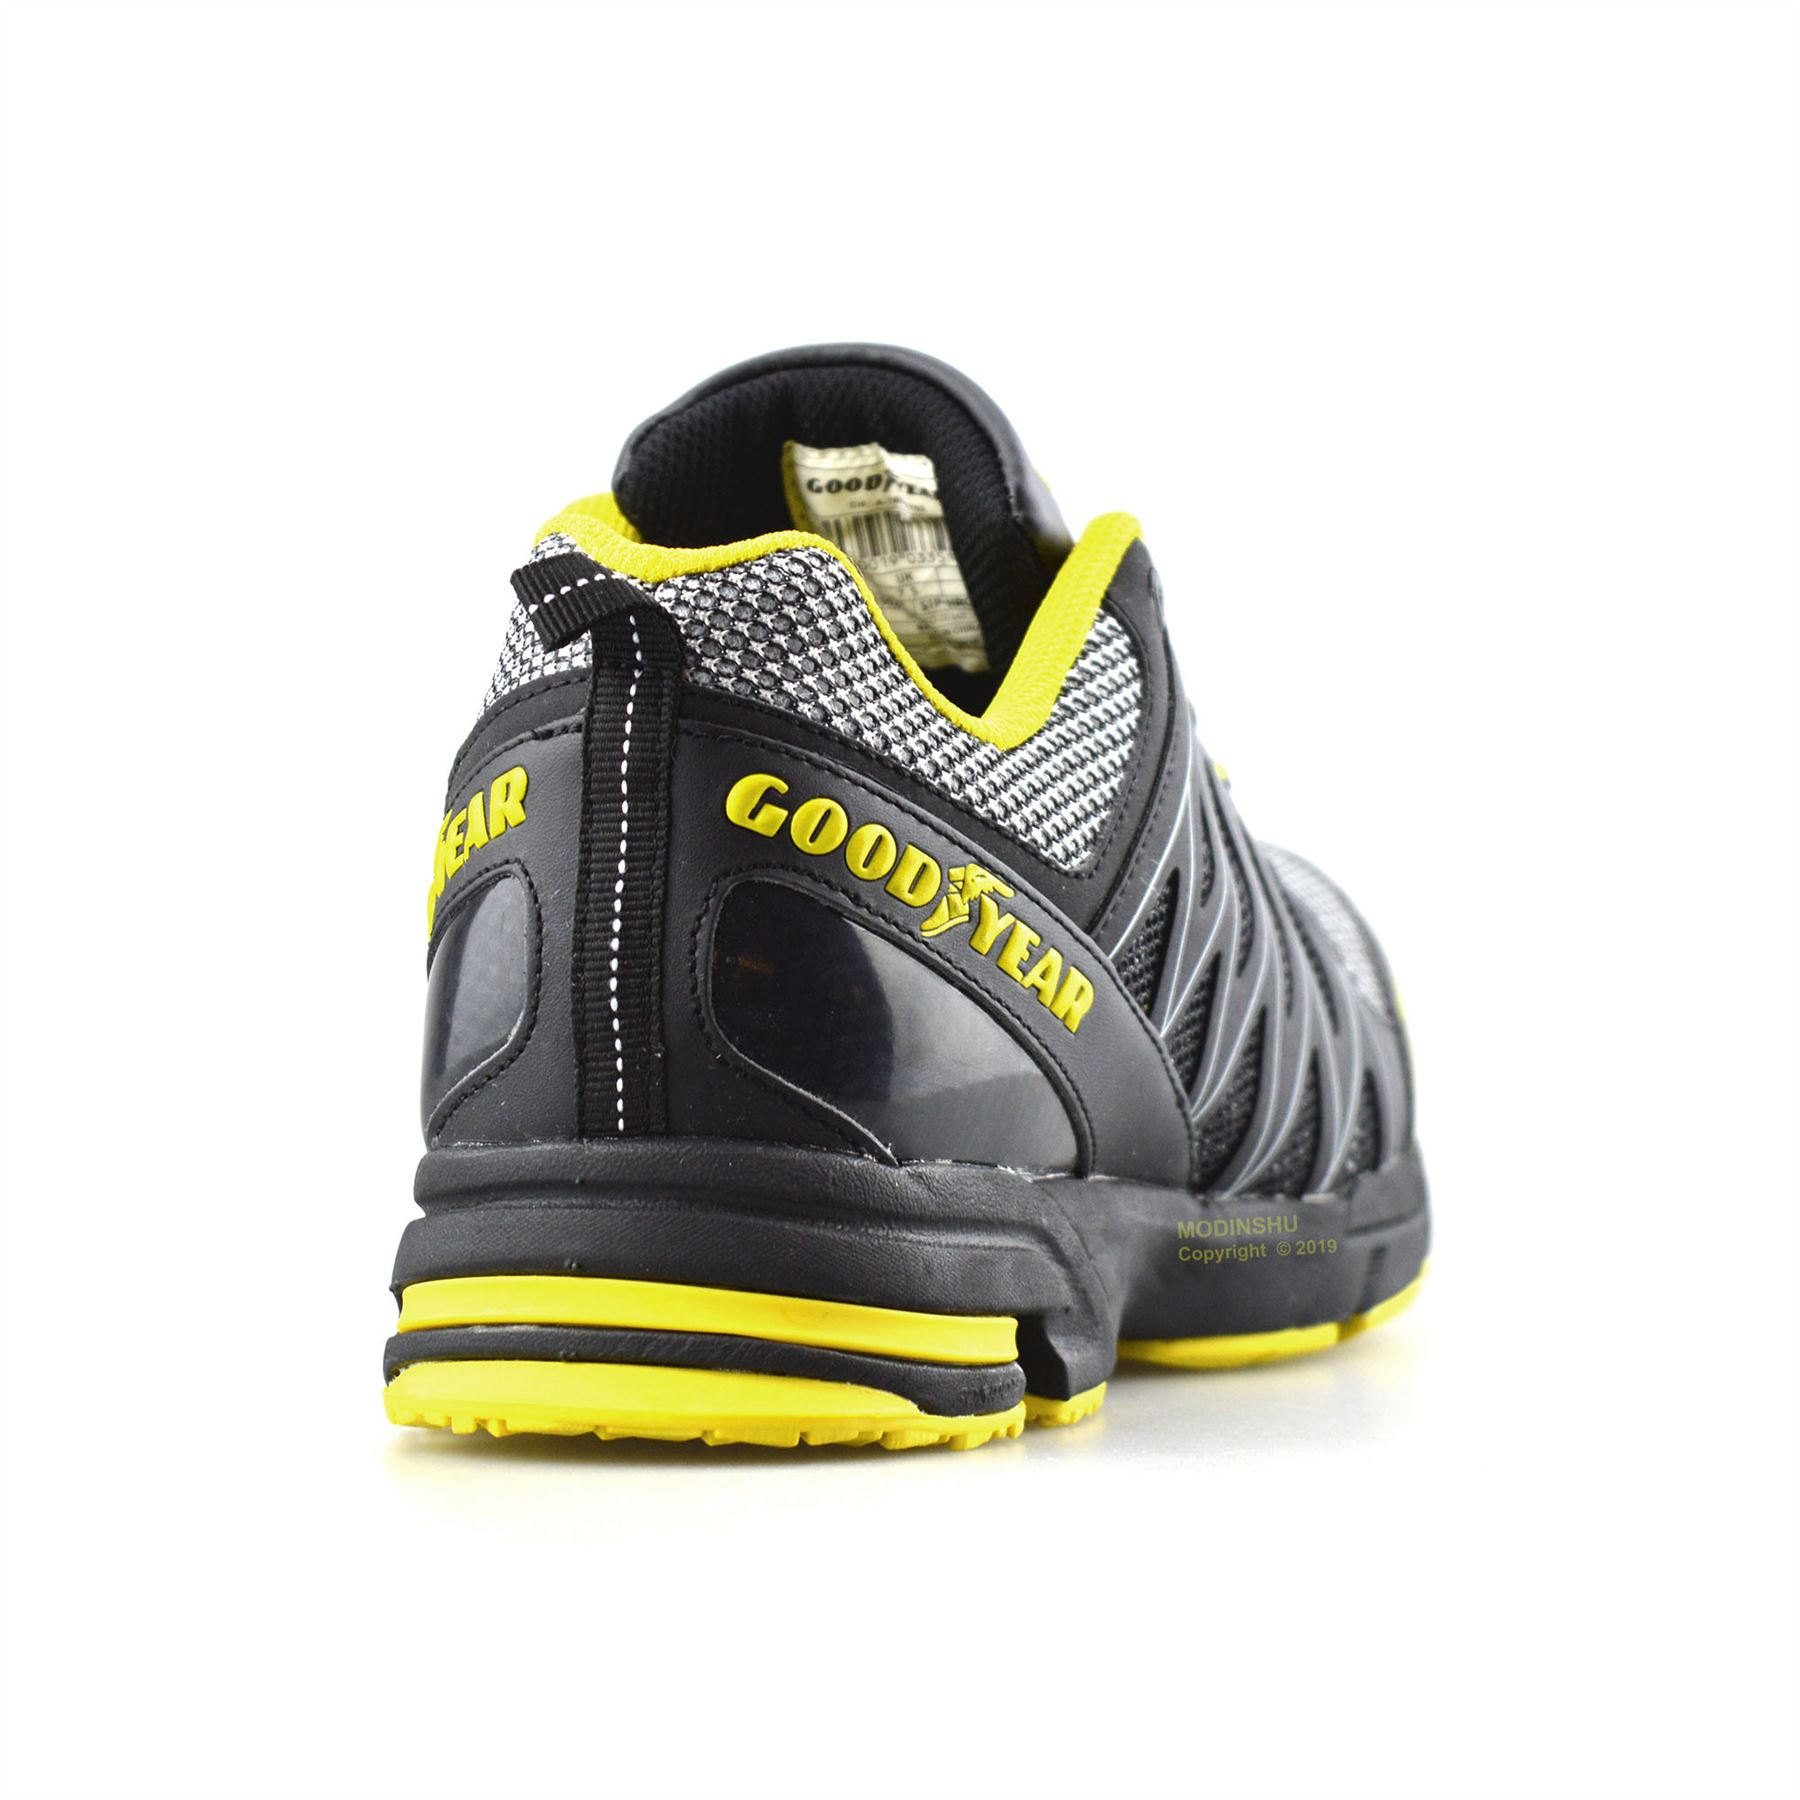 Mens-Goodyear-Safety-Steel-Toe-Cap-Work-Ankle-Hiker-Boots-Trainers-Shoes-Size thumbnail 10